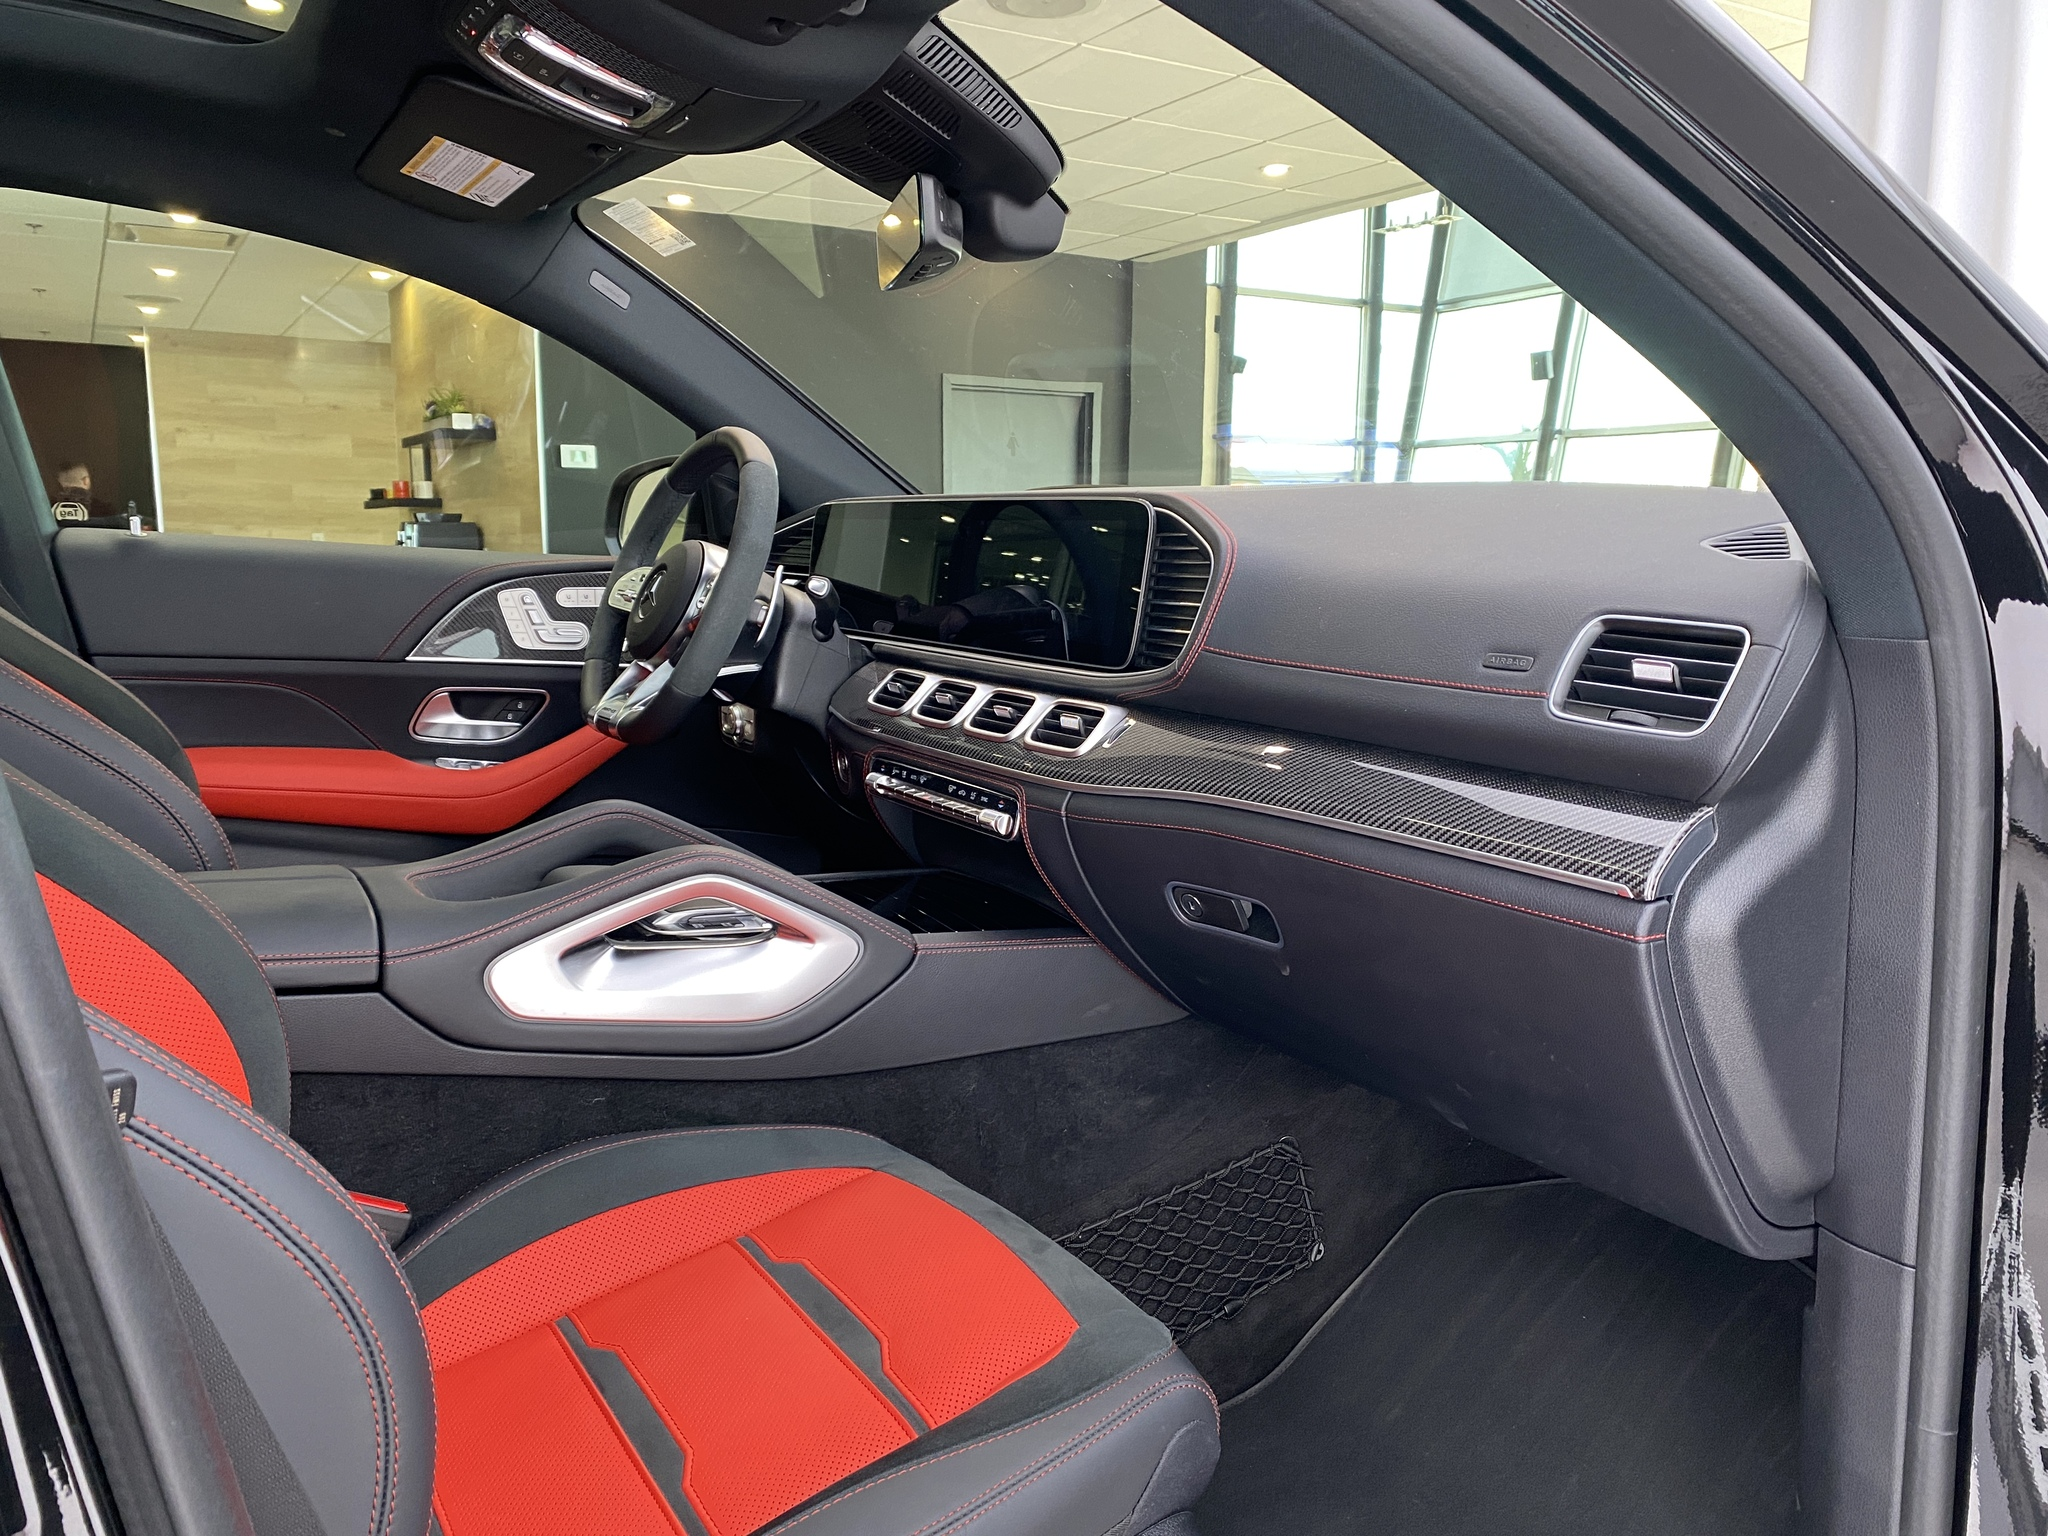 2021 Mercedes-Benz GLE-Class AMG GLE53 4MATIC+ Coupe 429hp complet